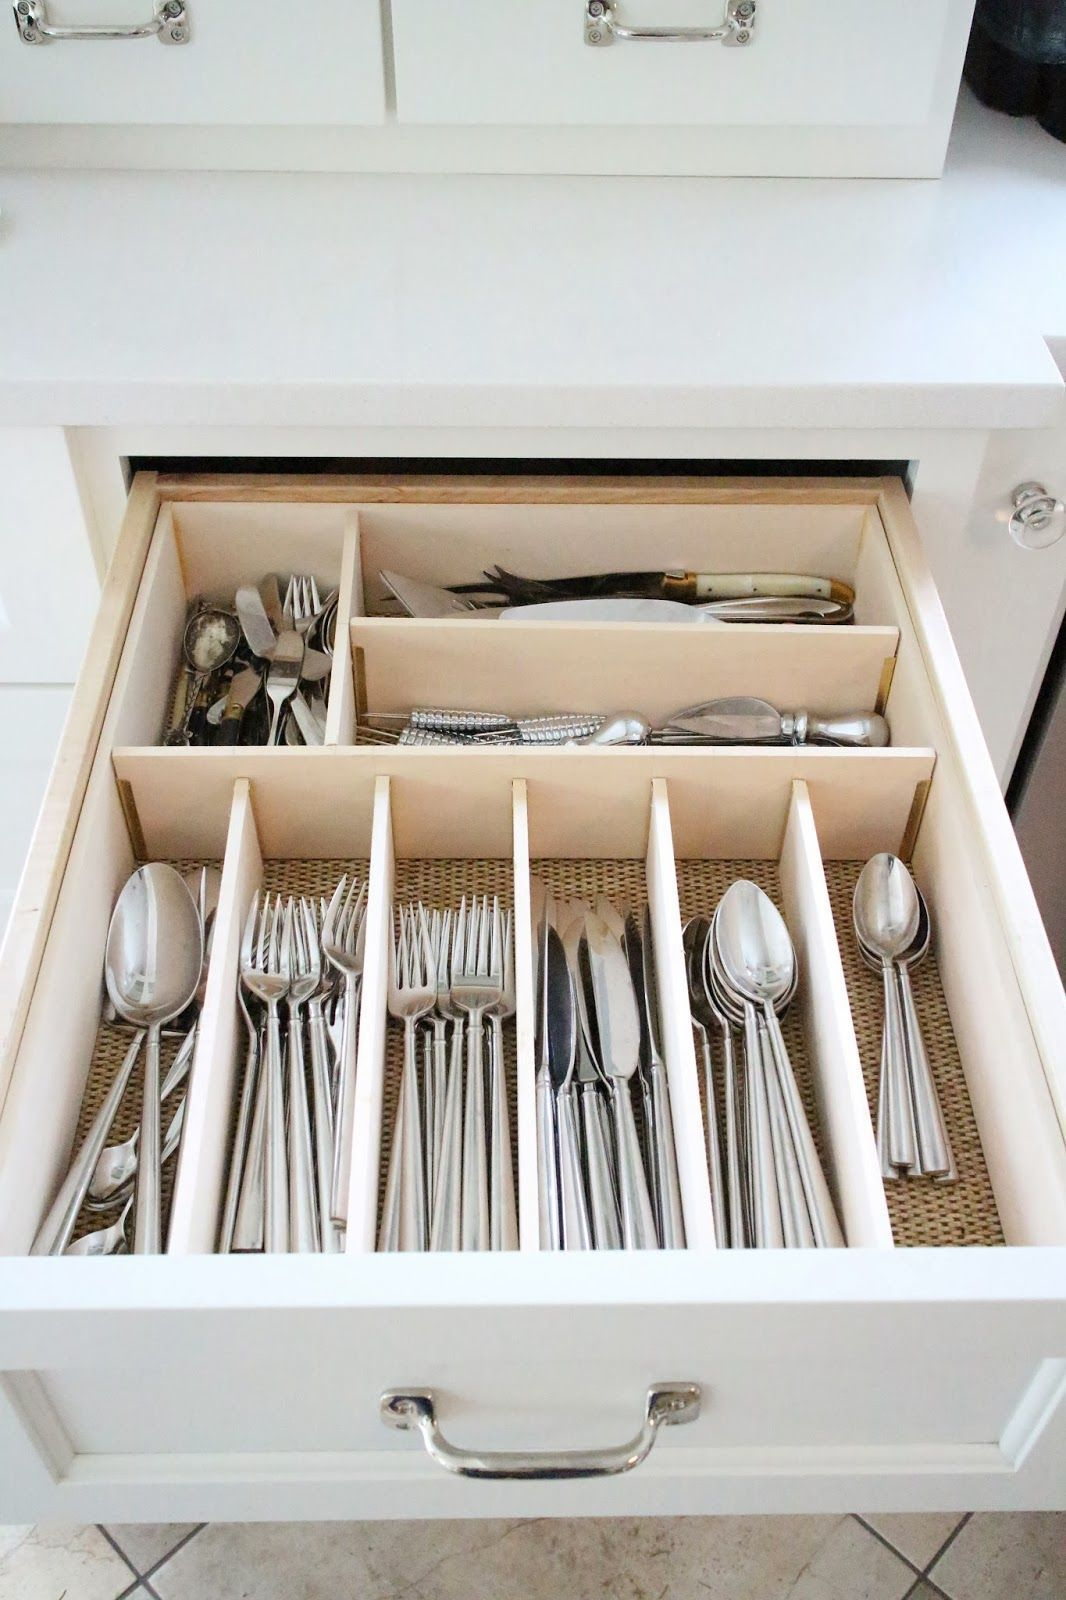 kitchen drawer organizer country range hoods organizing tips that keep the mess at bay